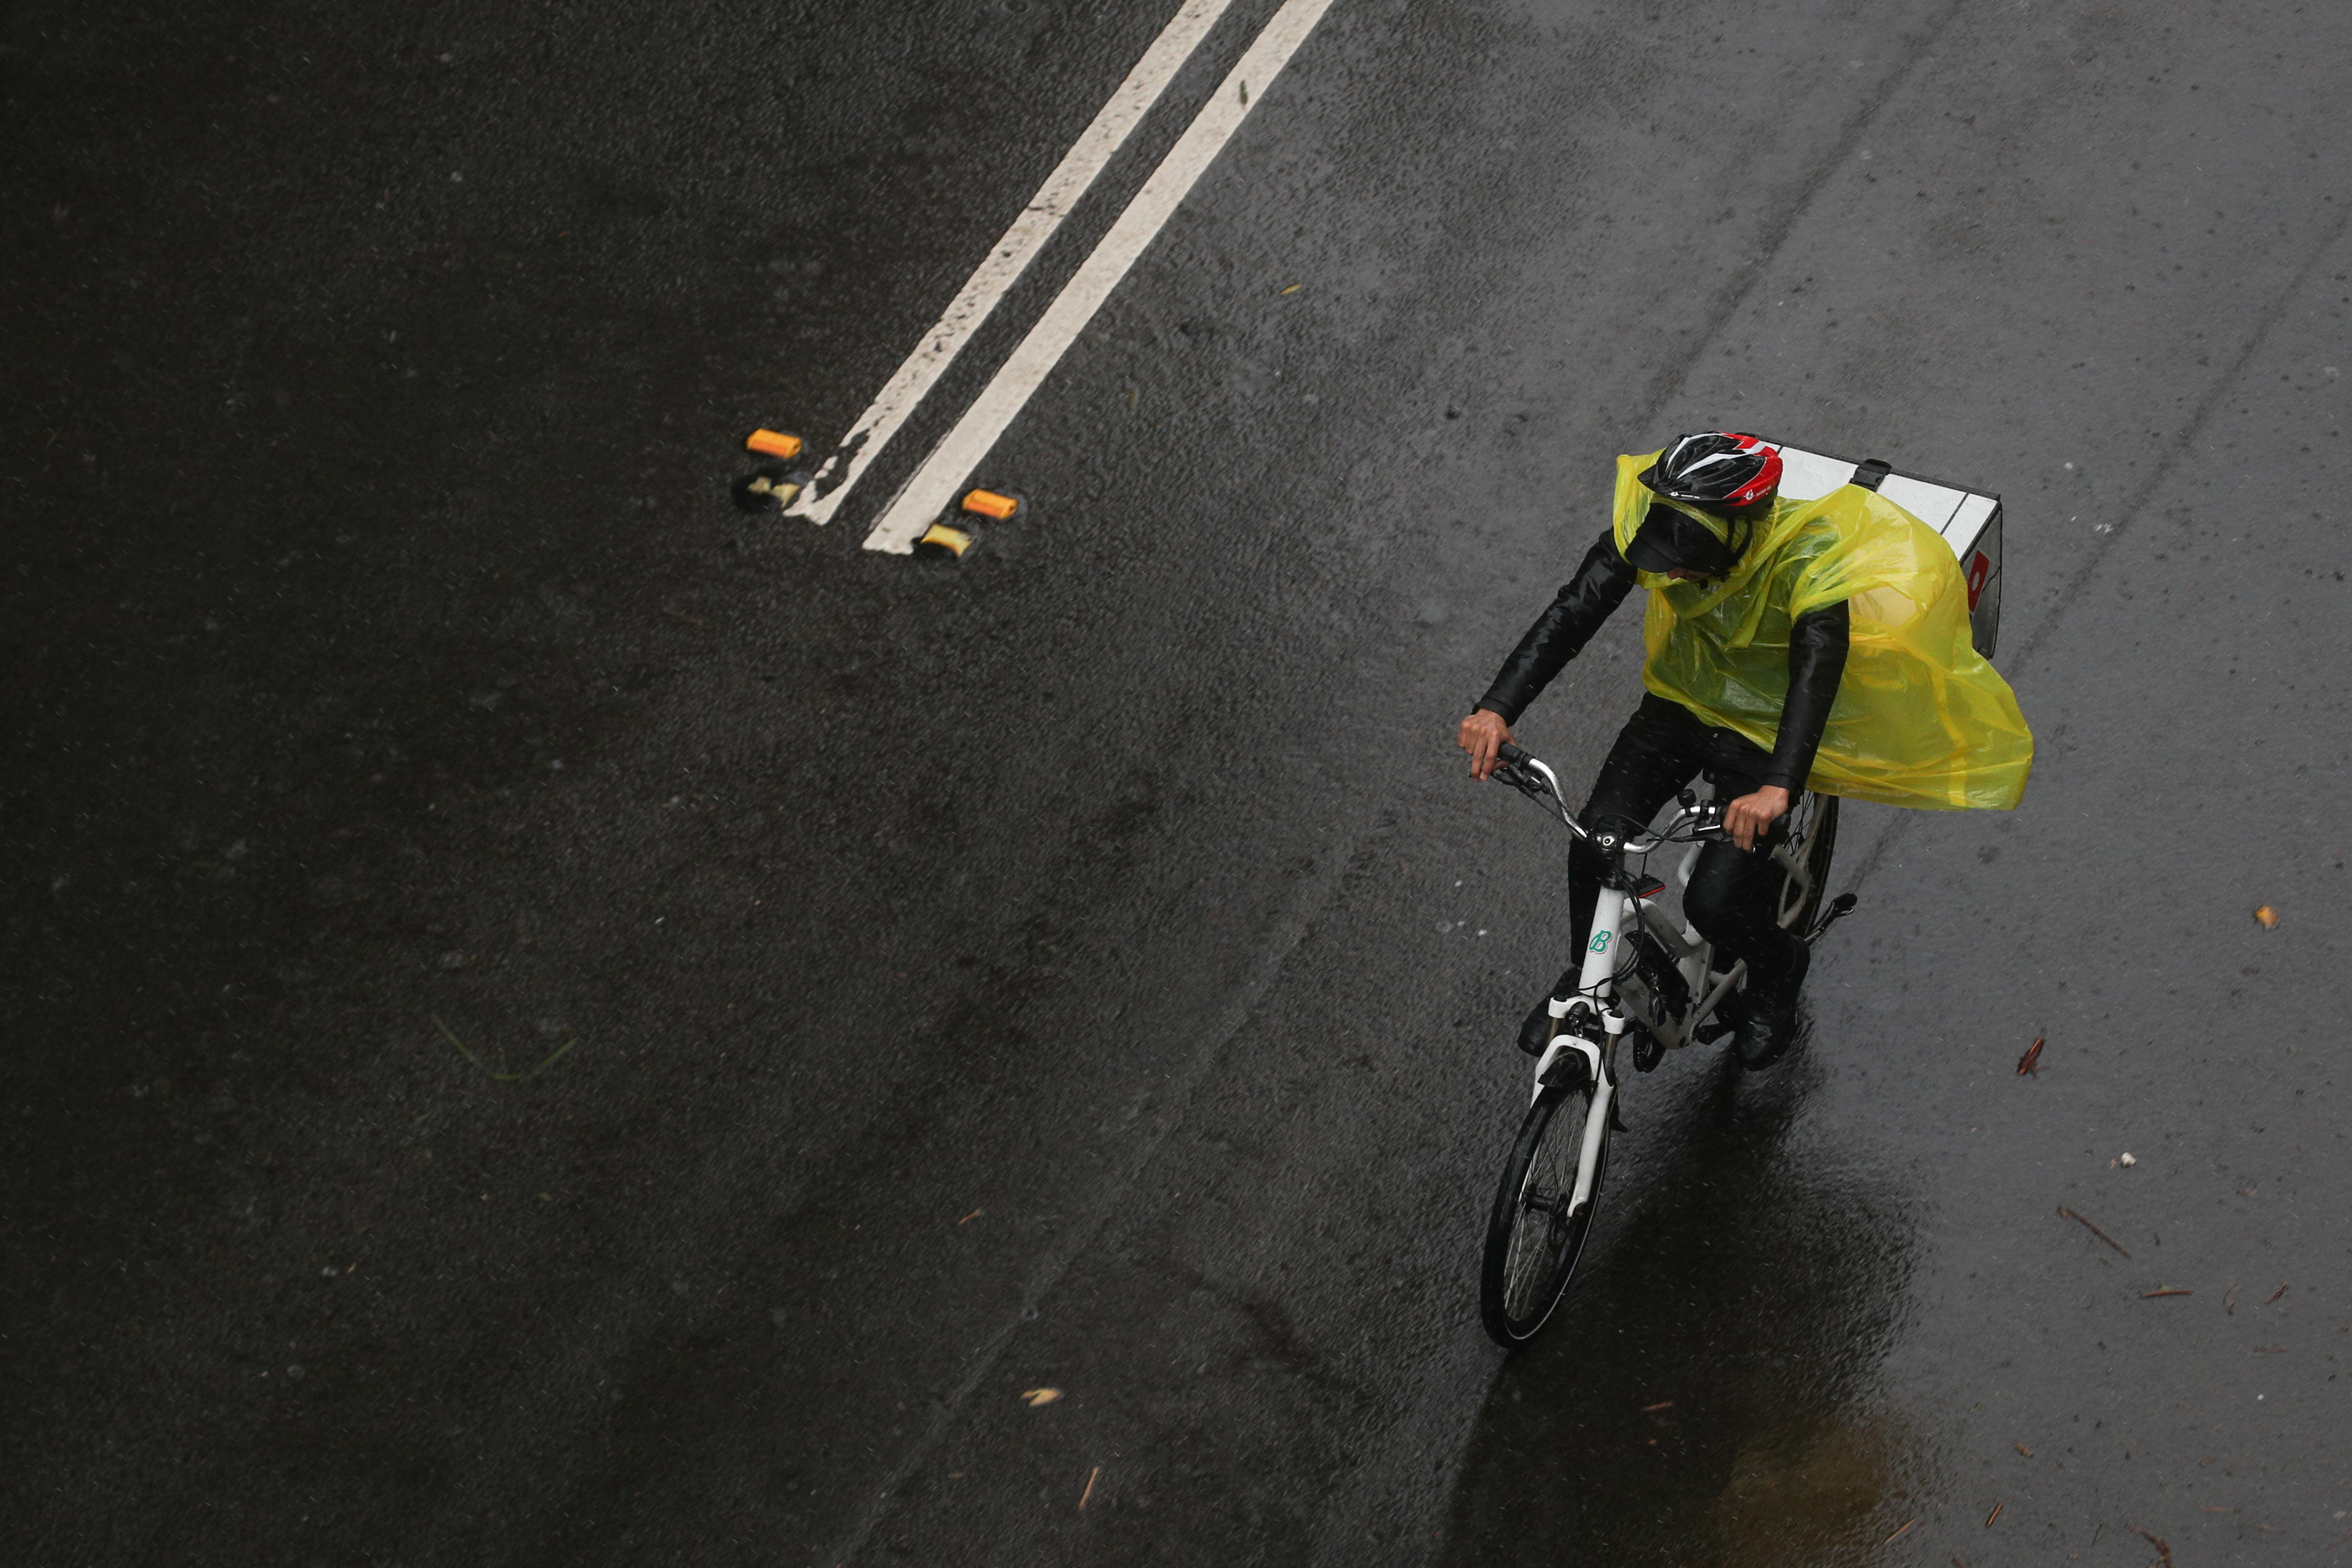 A bicycle deliveryman braves strong wind and rain in Sydney, New South Wales, Australia, February 9, 2020.  REUTERS/Loren Elliott - RC2PWE9OMABW